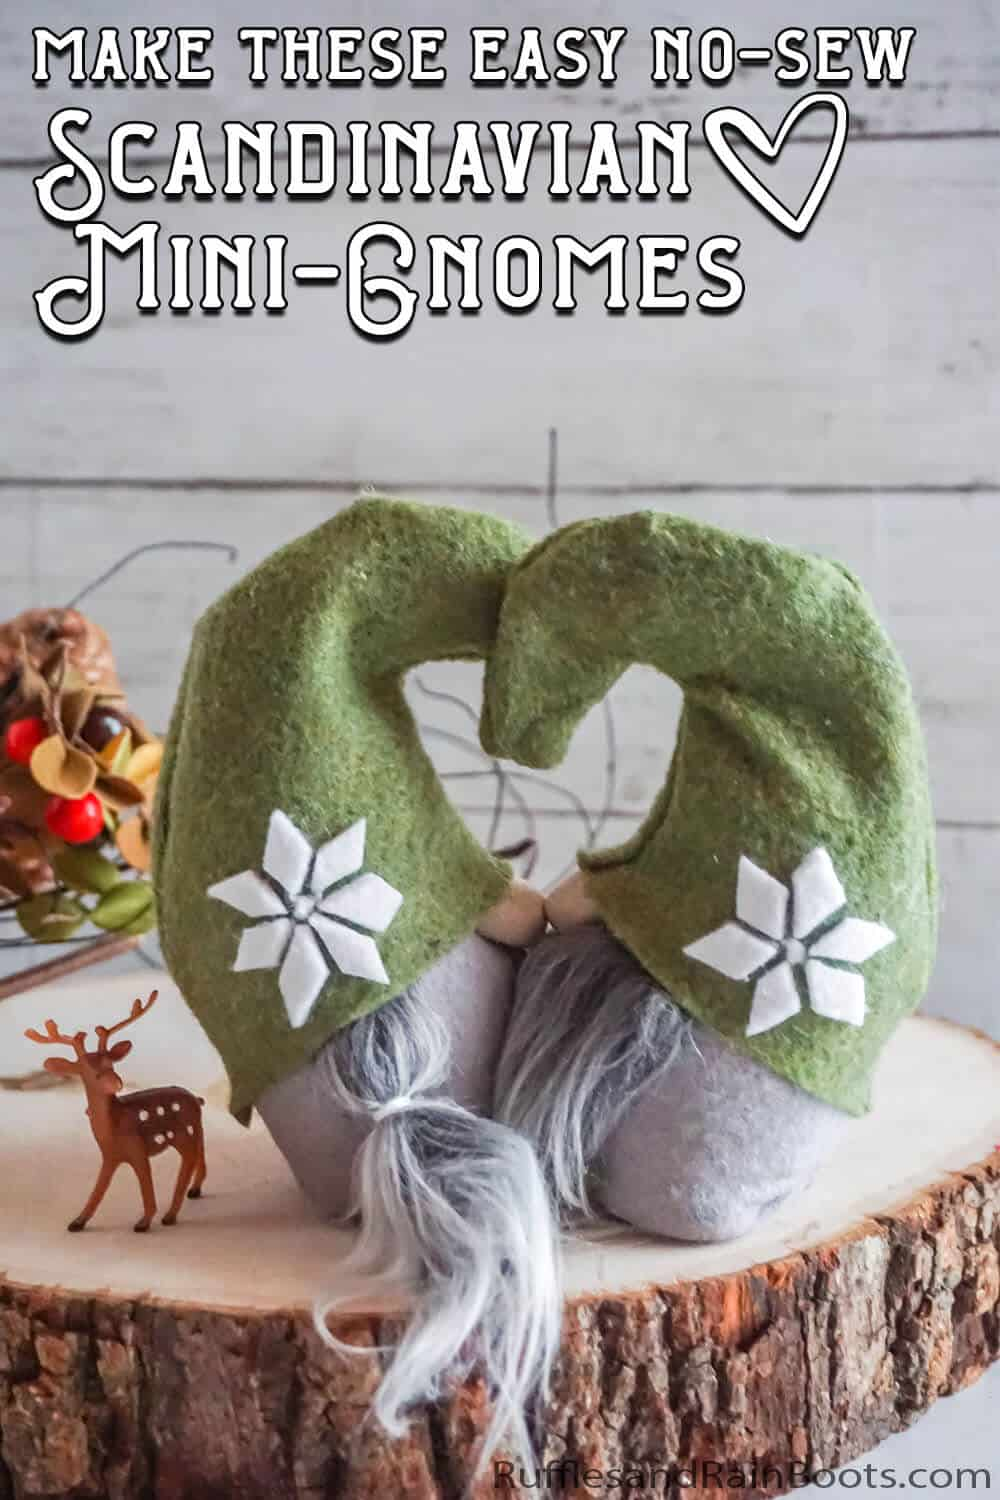 scandinavian style gnome pattern with text which reads make these easy no-sew scandinavian mini gnomes